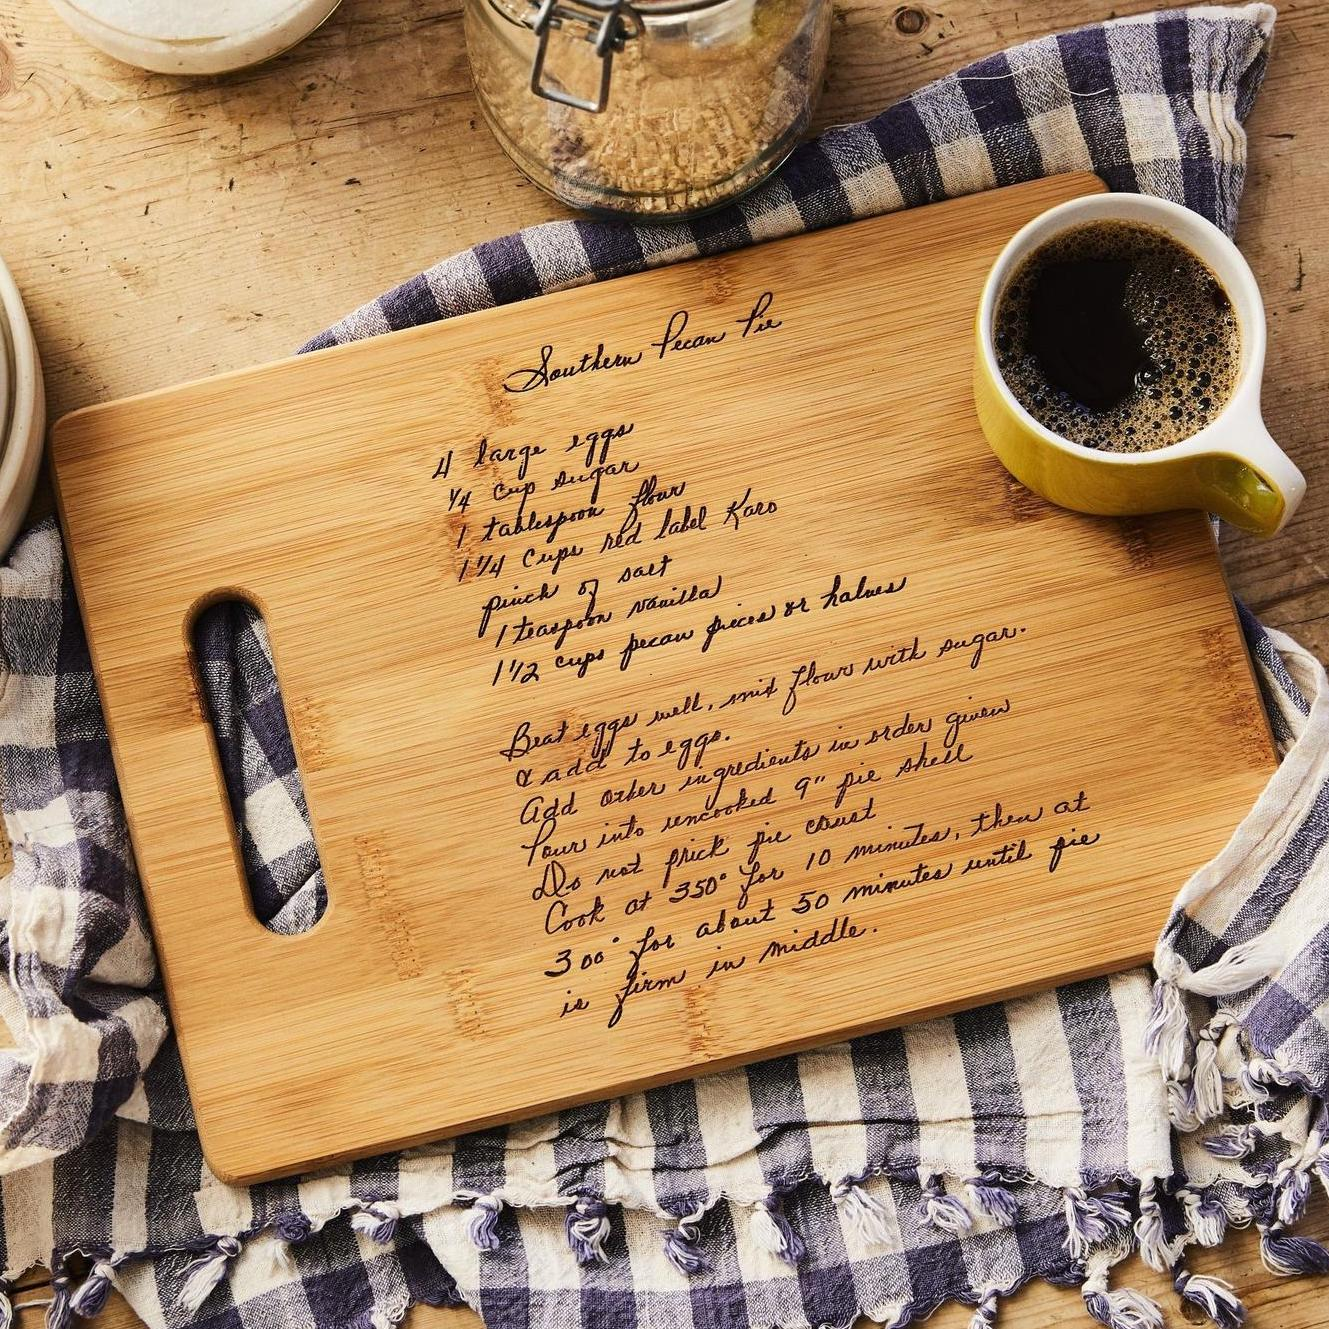 wooden cutting board with laser-engraved recipe